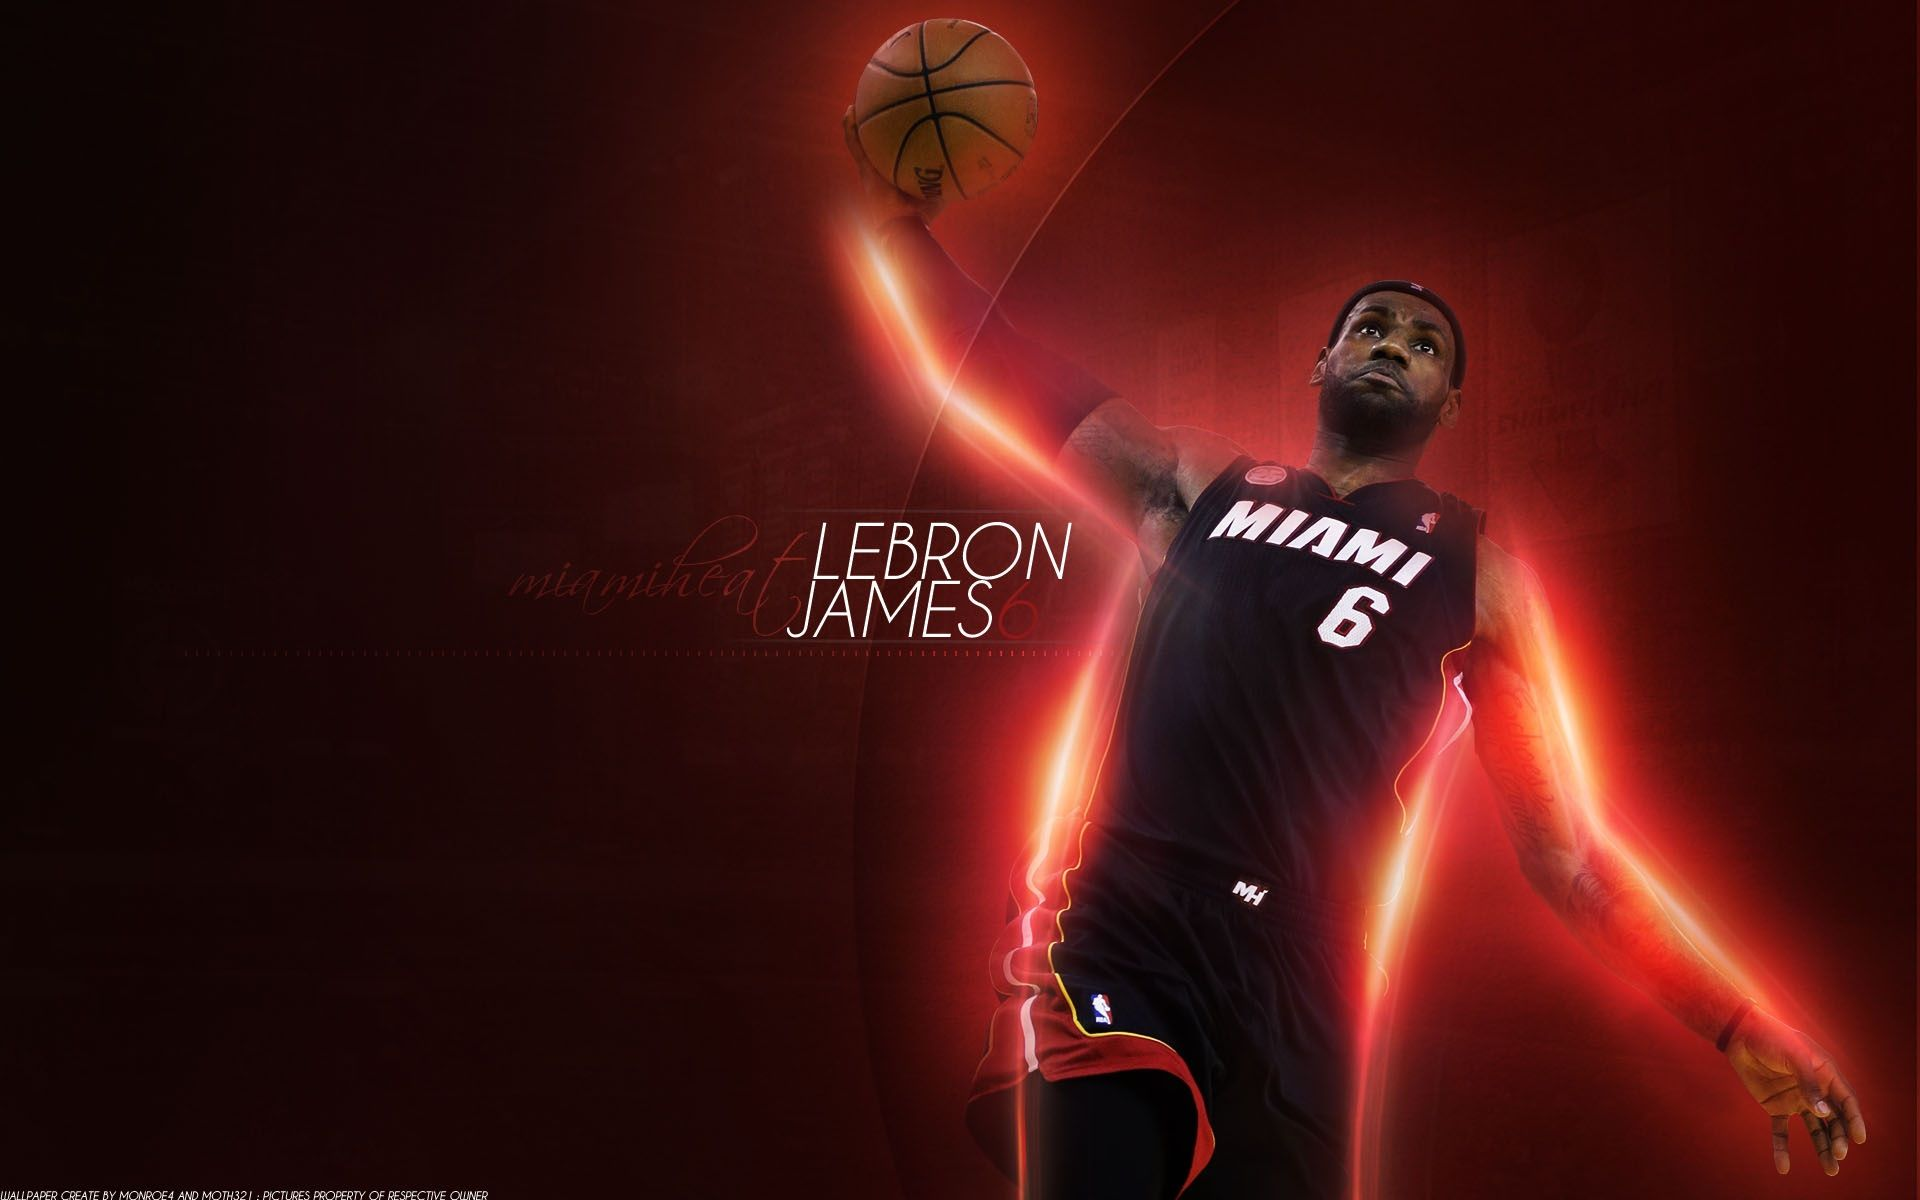 Miami Heat Wallpapers 2013 4013 Wallpaper Lebron James Wallpapers Lebron James Basketball Wallpaper